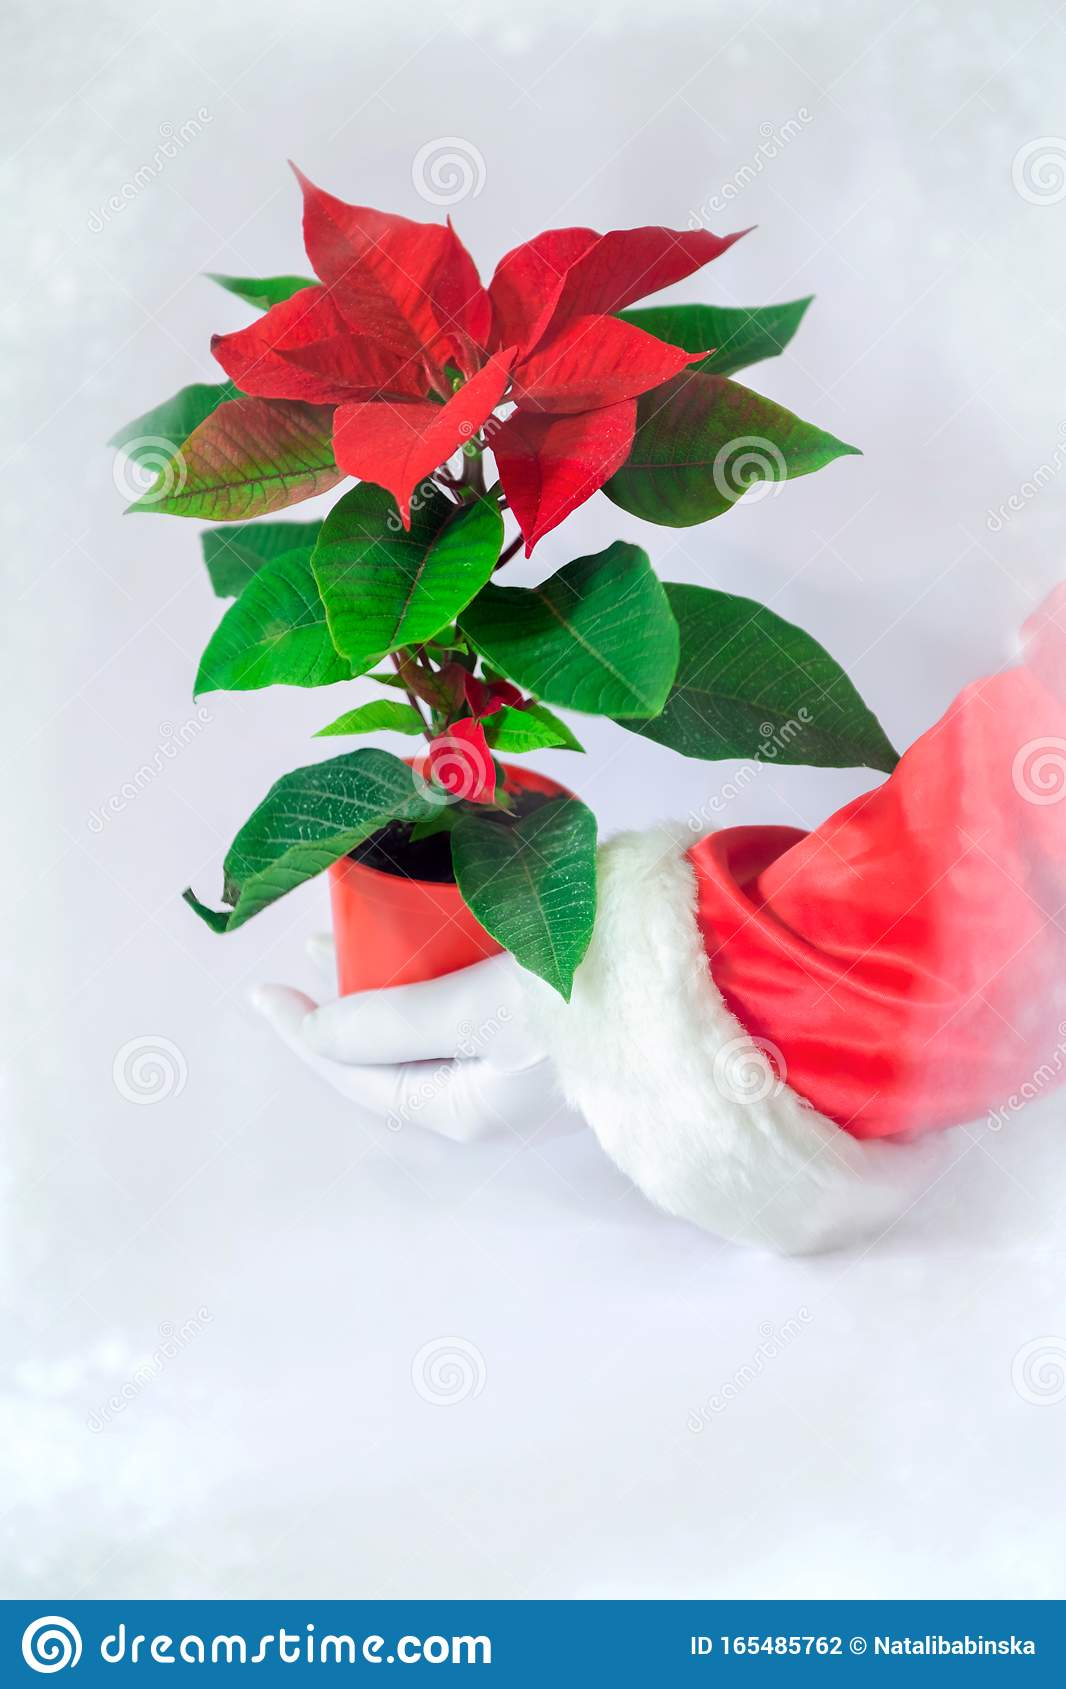 Red Poinsettia White Snow Background Hand Santa Claus Glove Green Leaves Hold Window Stock Photo Image Of Fairy Fabulous 165485762